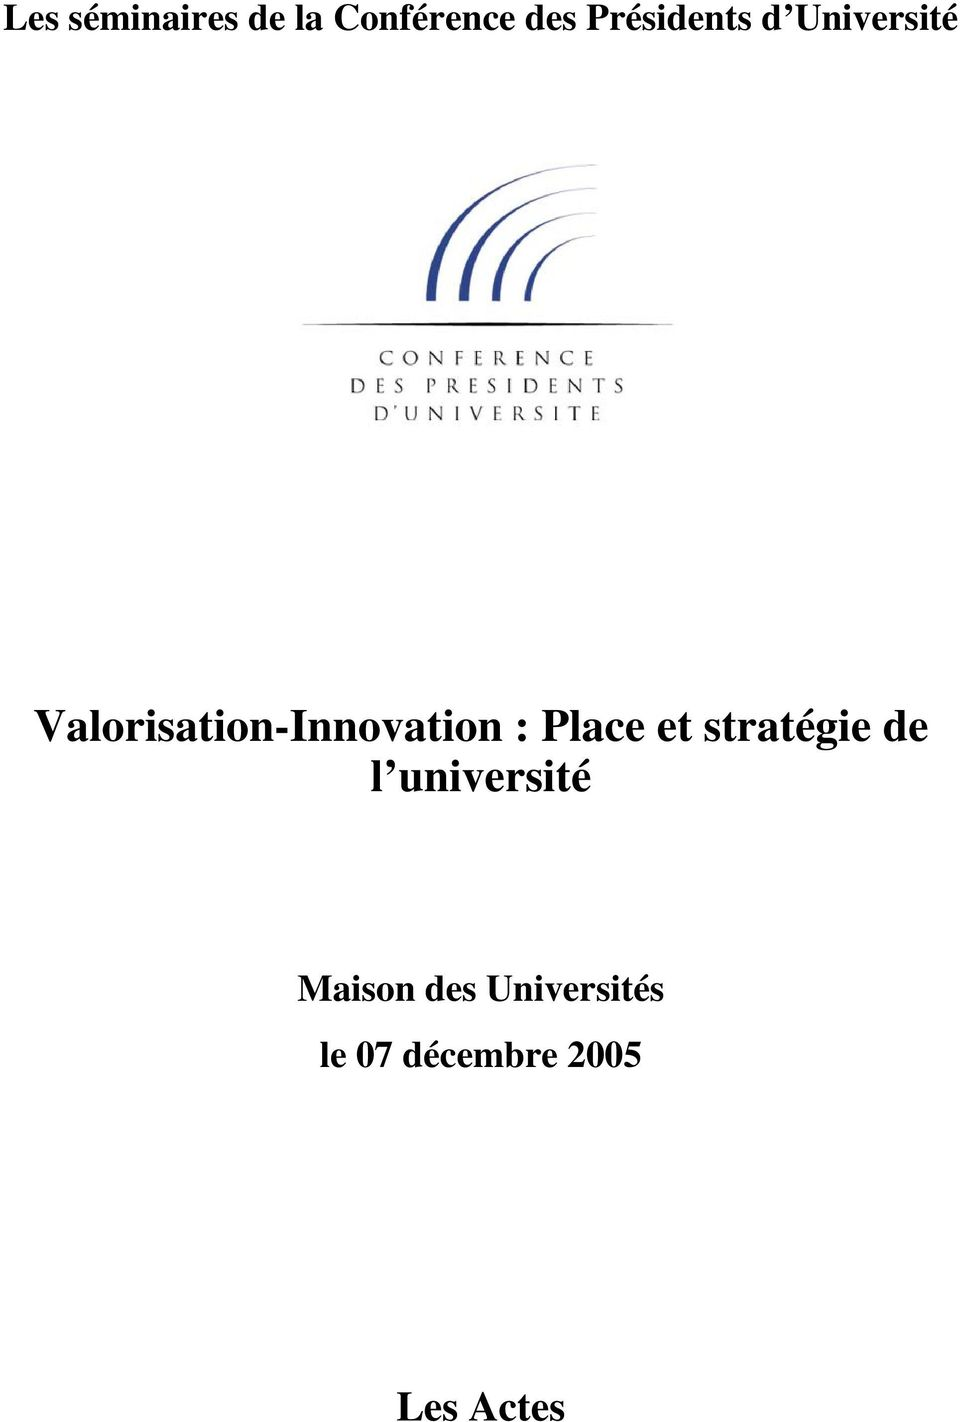 Valorisation-Innovation : Place et